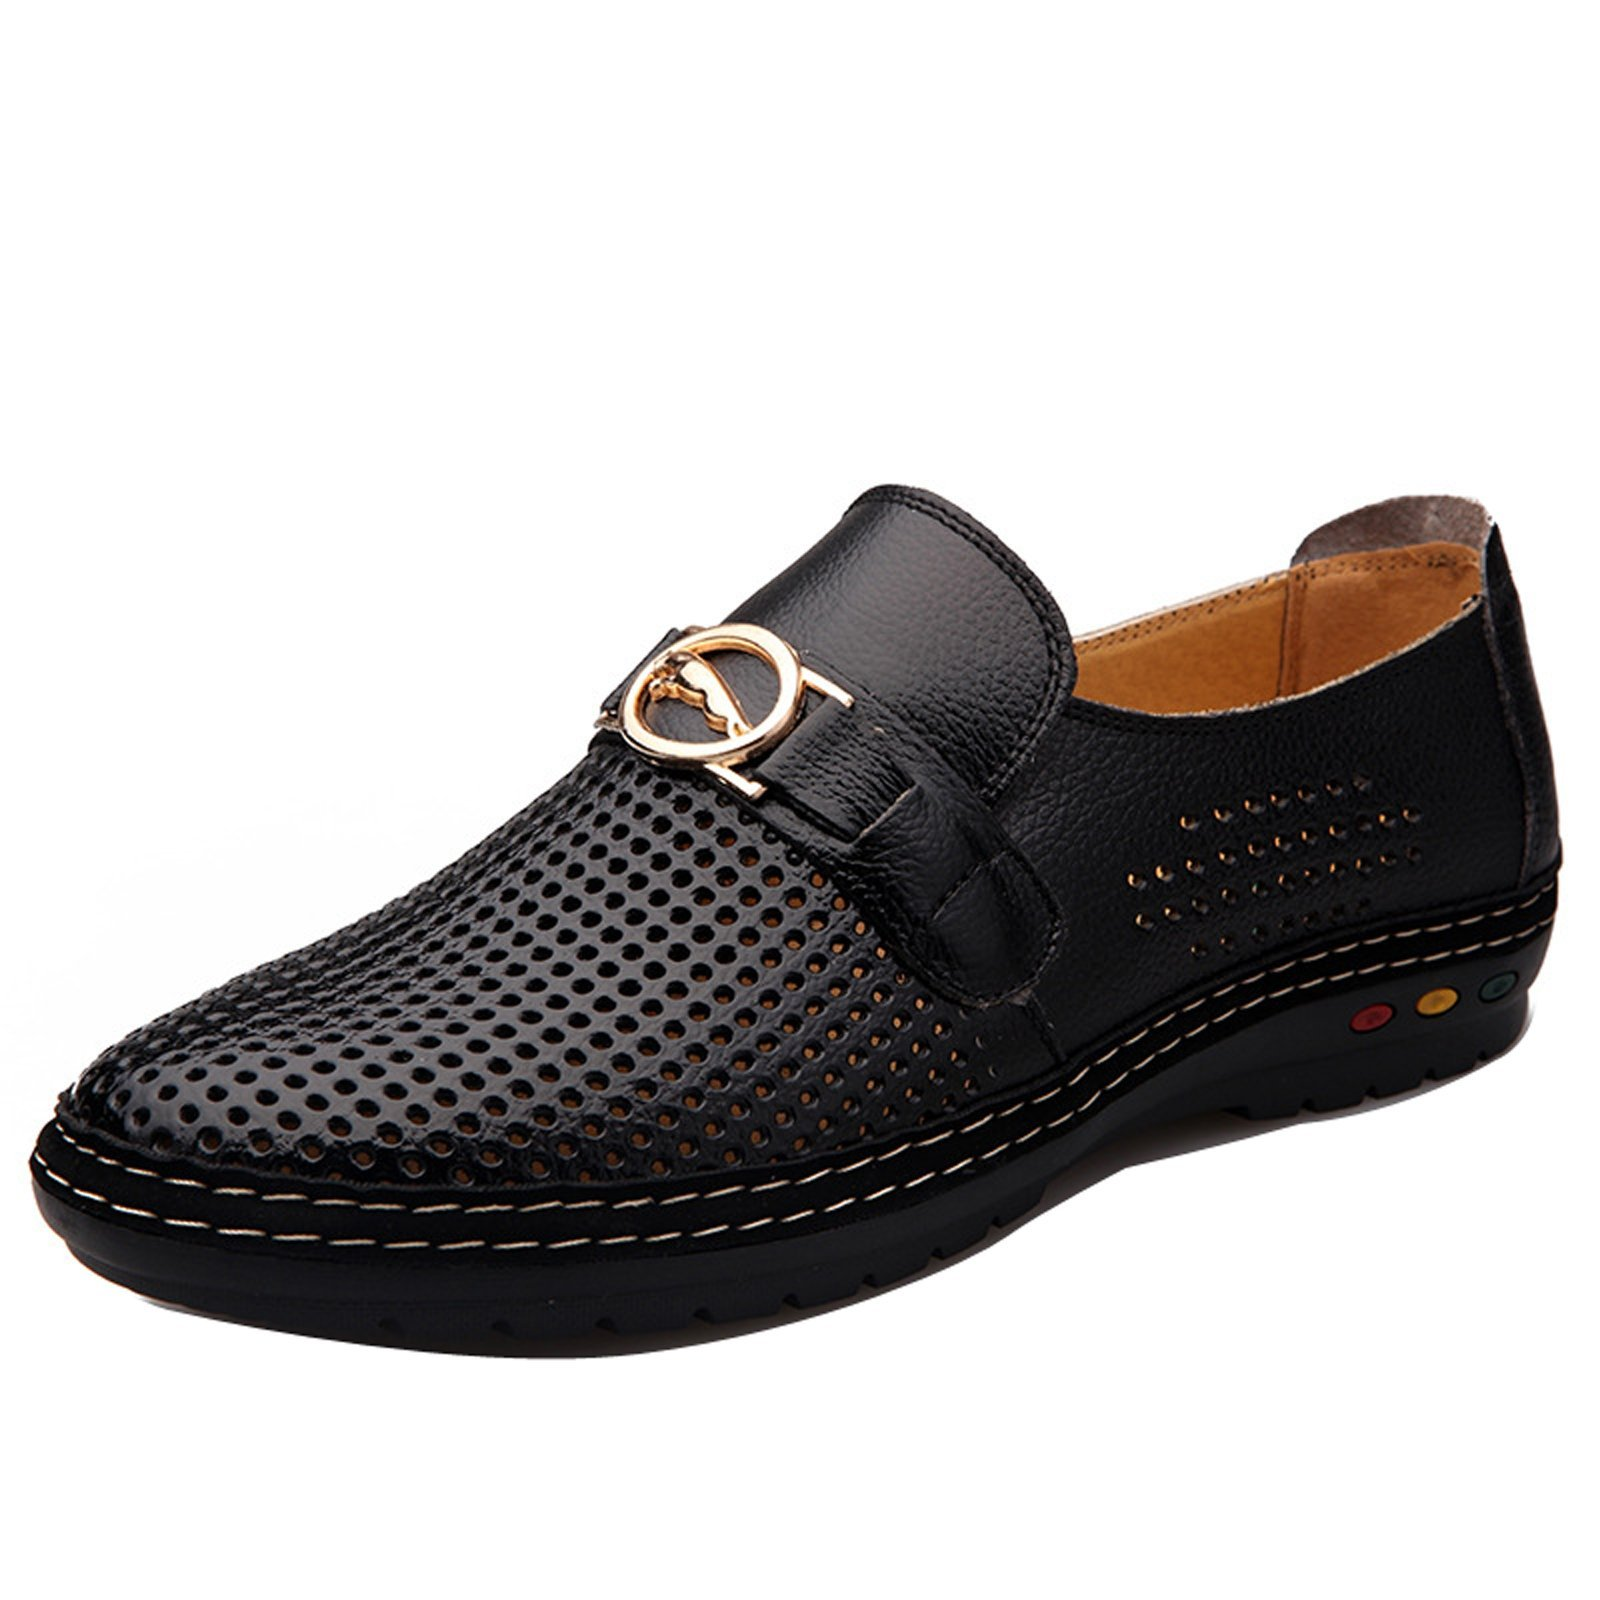 Gaorui Mens Hollow Out Business Dress Formal Leather Shoe Summer Casual Loafers Sandals by Gaorui